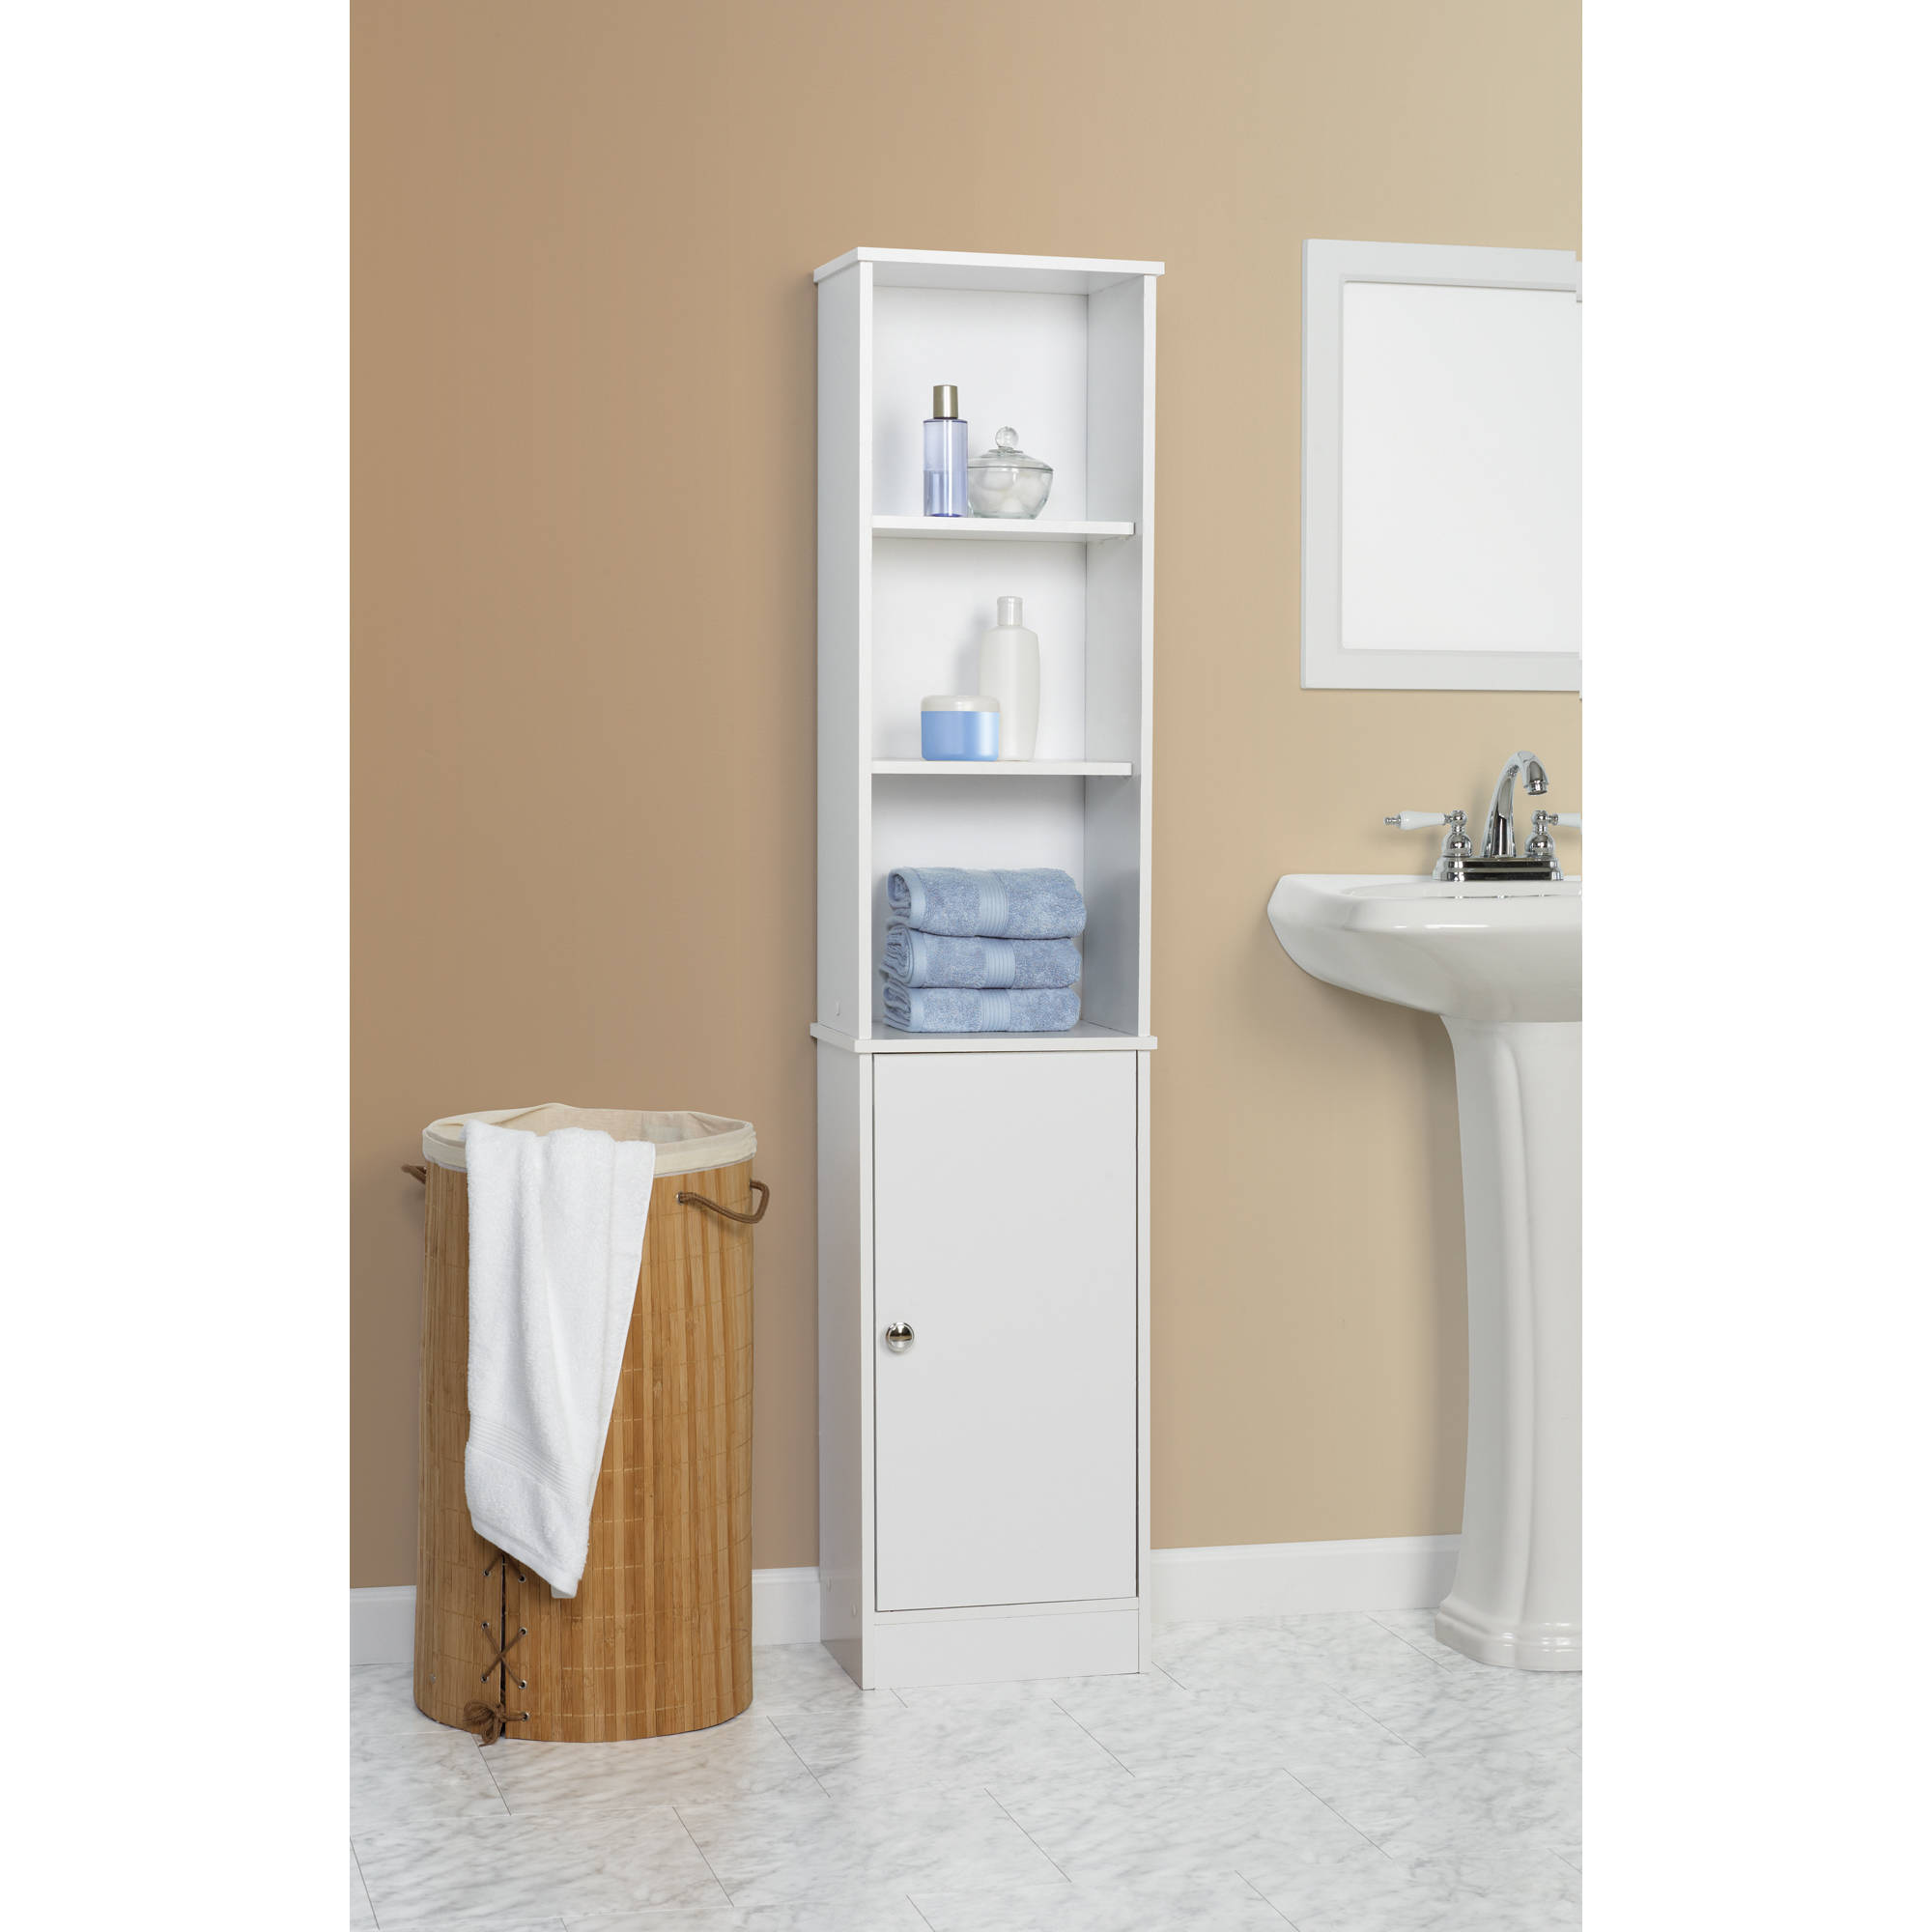 Bathroom Shelves - Walmart.com